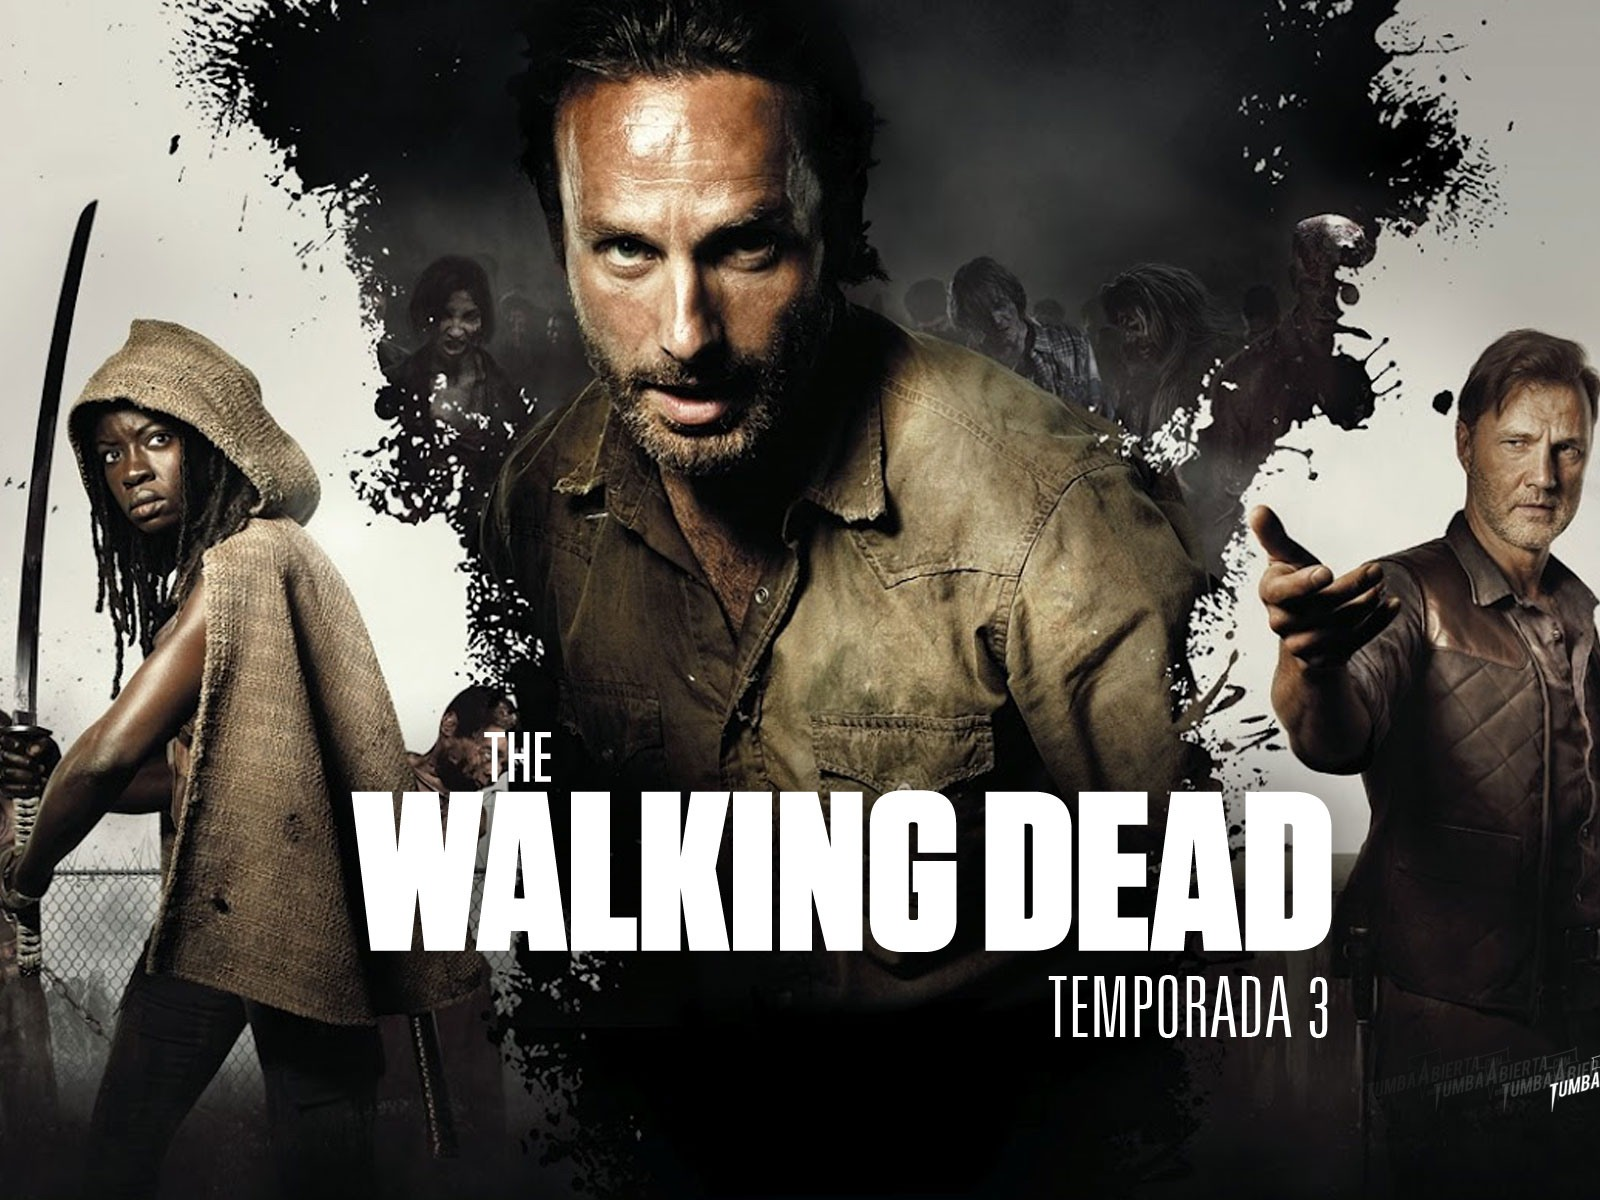 The Walking Dead HD Wallpaper #15 - 1600x1200